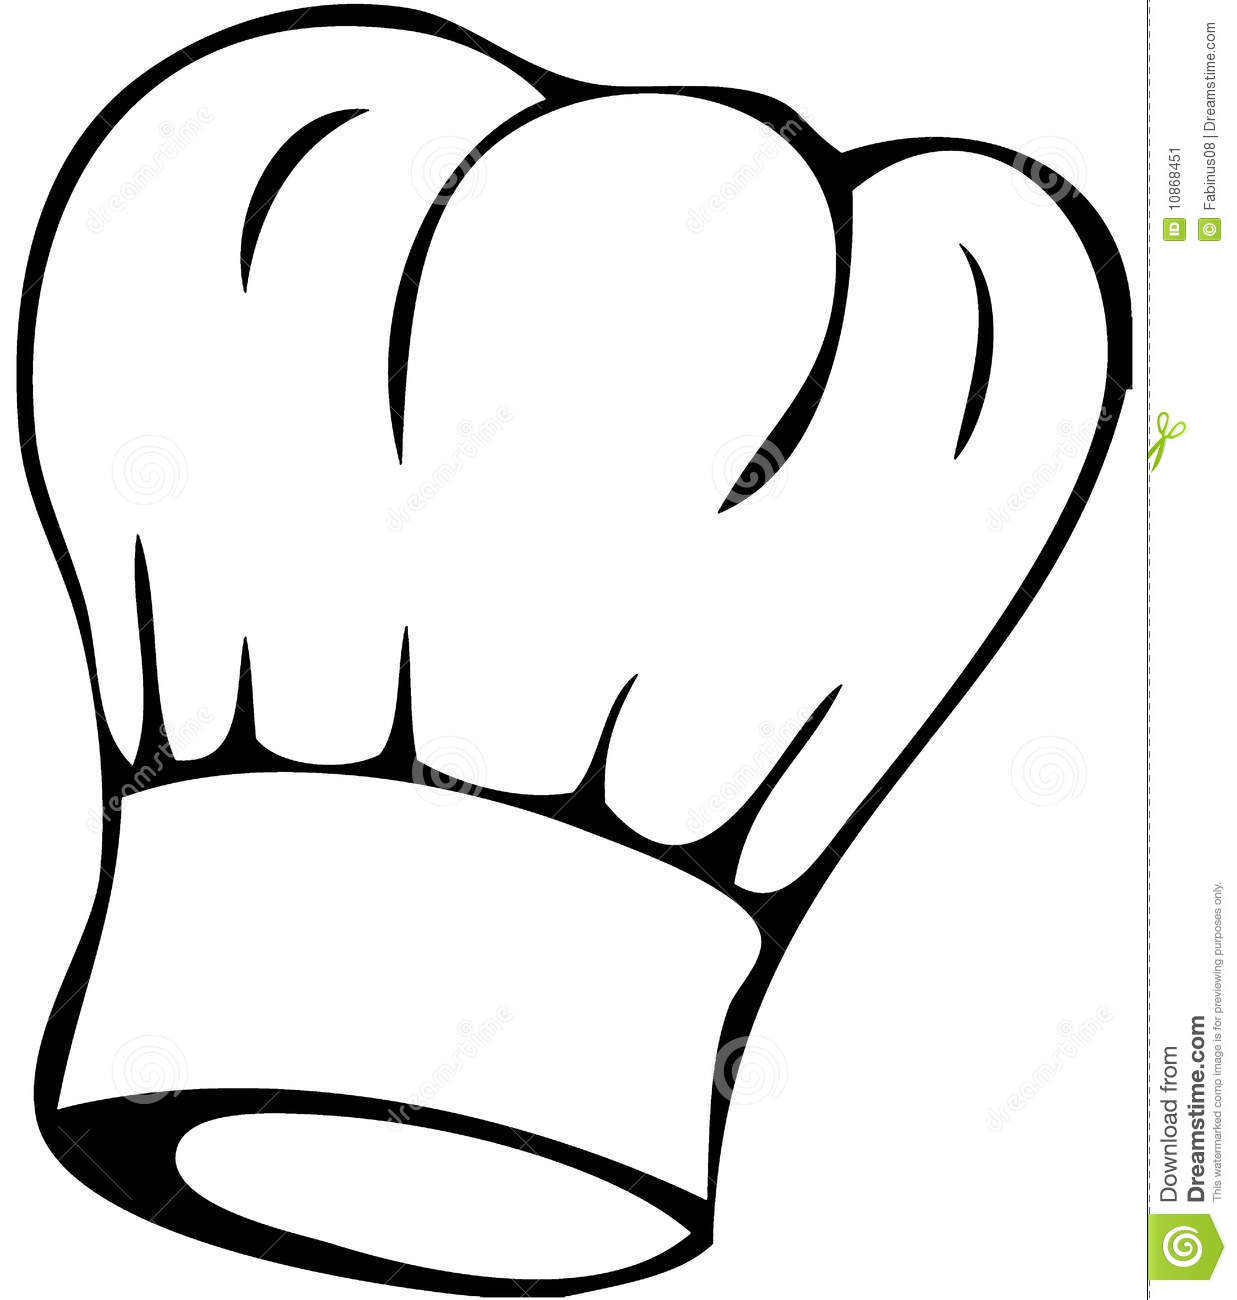 hight resolution of chef hat clipart black and white